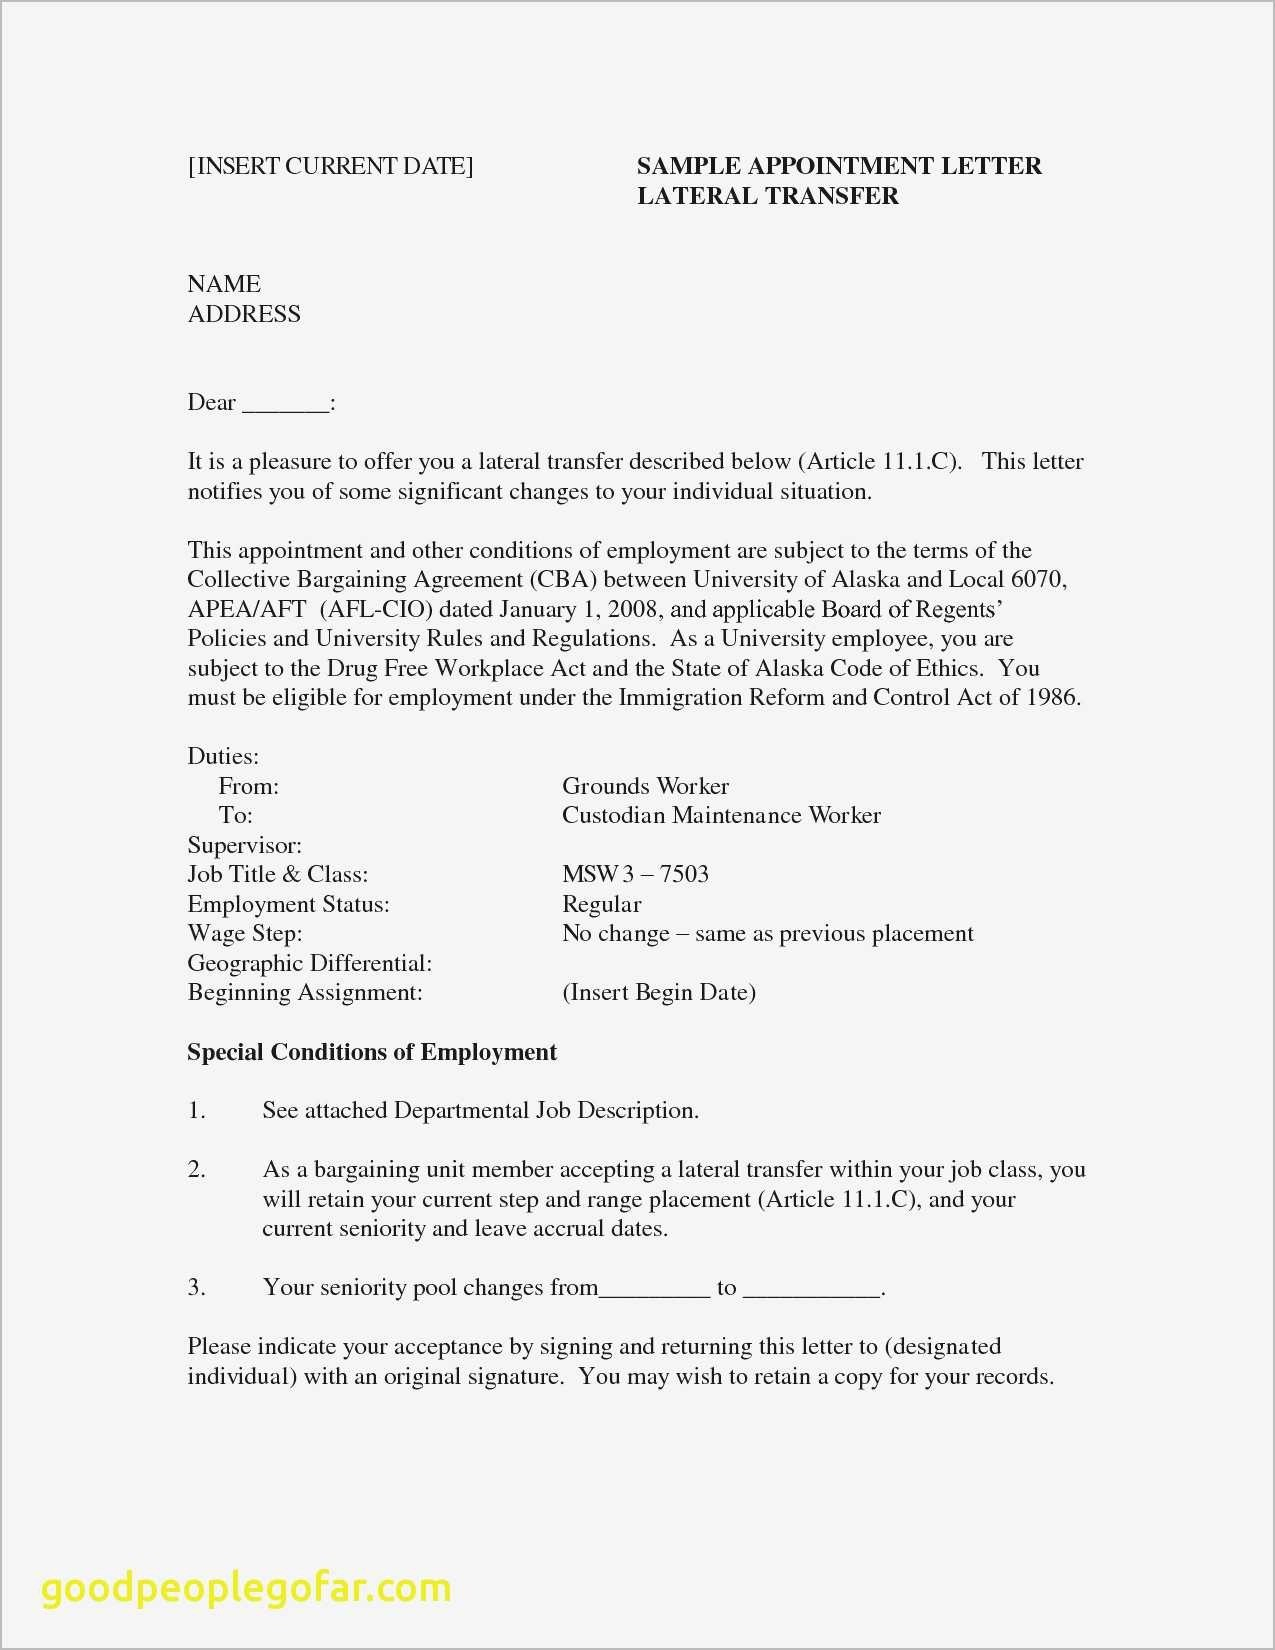 Resume Temporary Jobs - How to Make A Job Resume Awesome Resume Temporary Jobs New Writing A